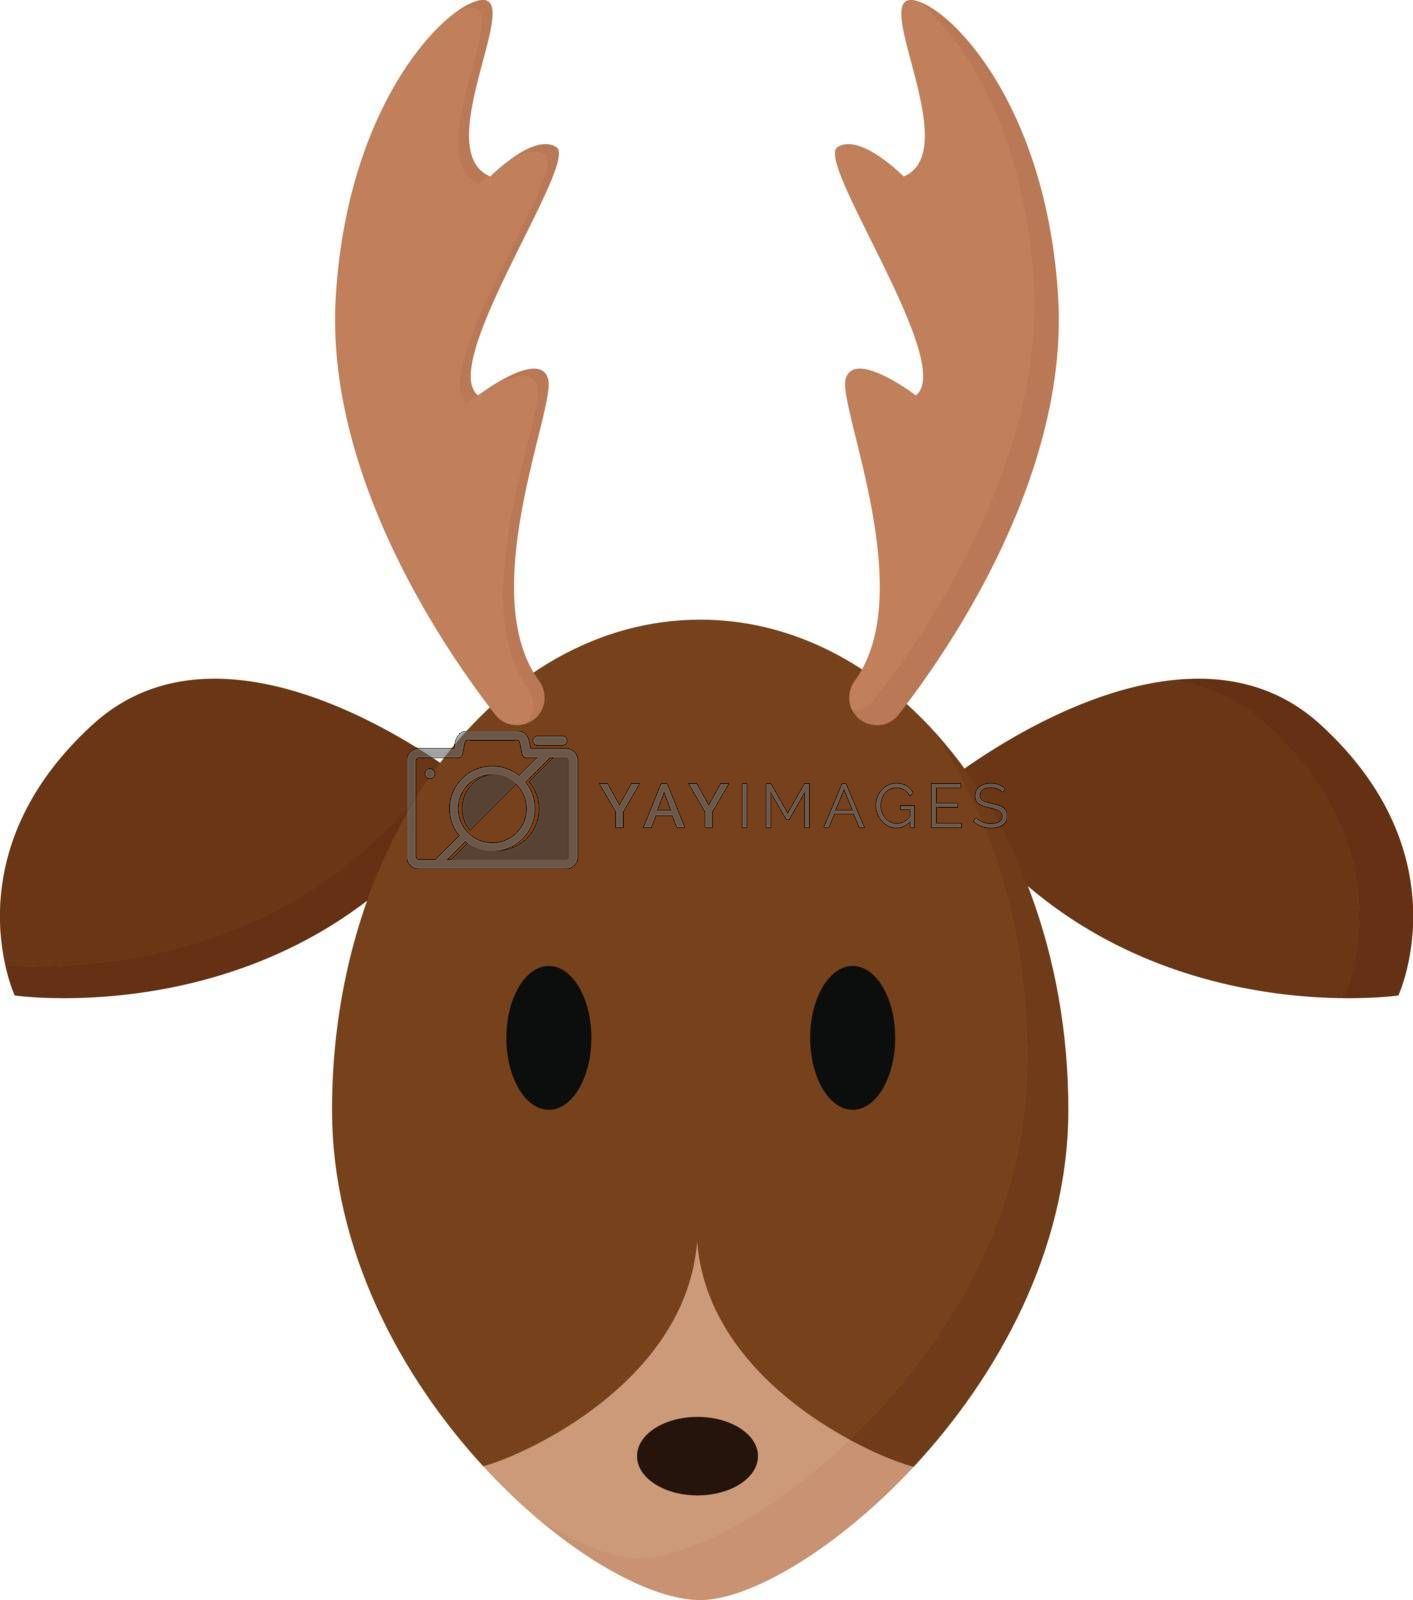 Royalty free image of Clipart of the face of a deer vector or color illustration by Morphart